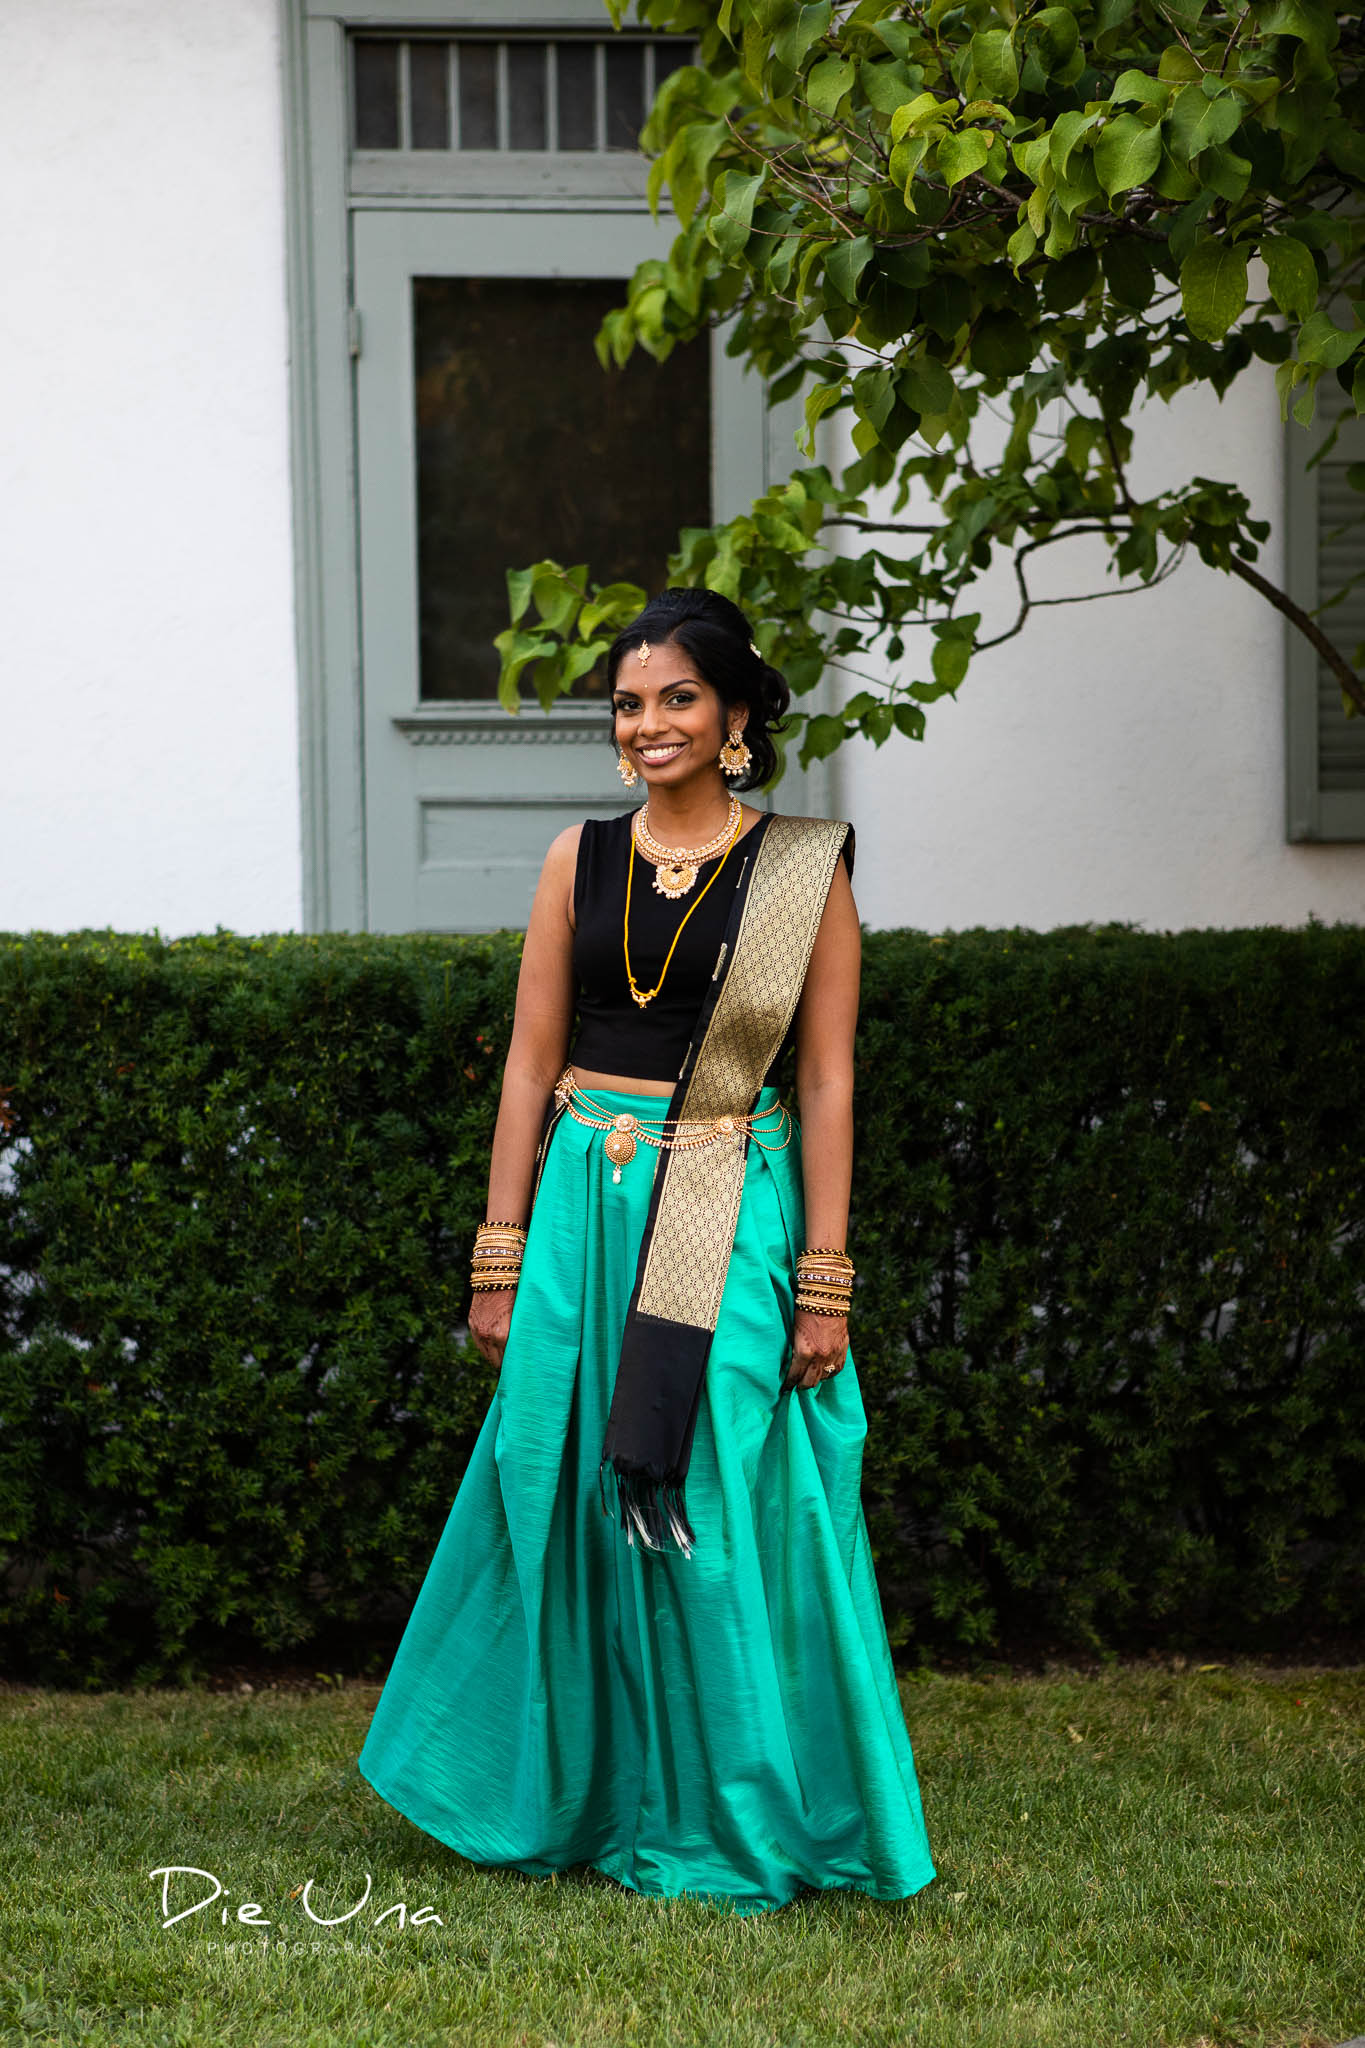 bride wearing second evening outfit with turquoise skirt and black top wearing thaali.jpg